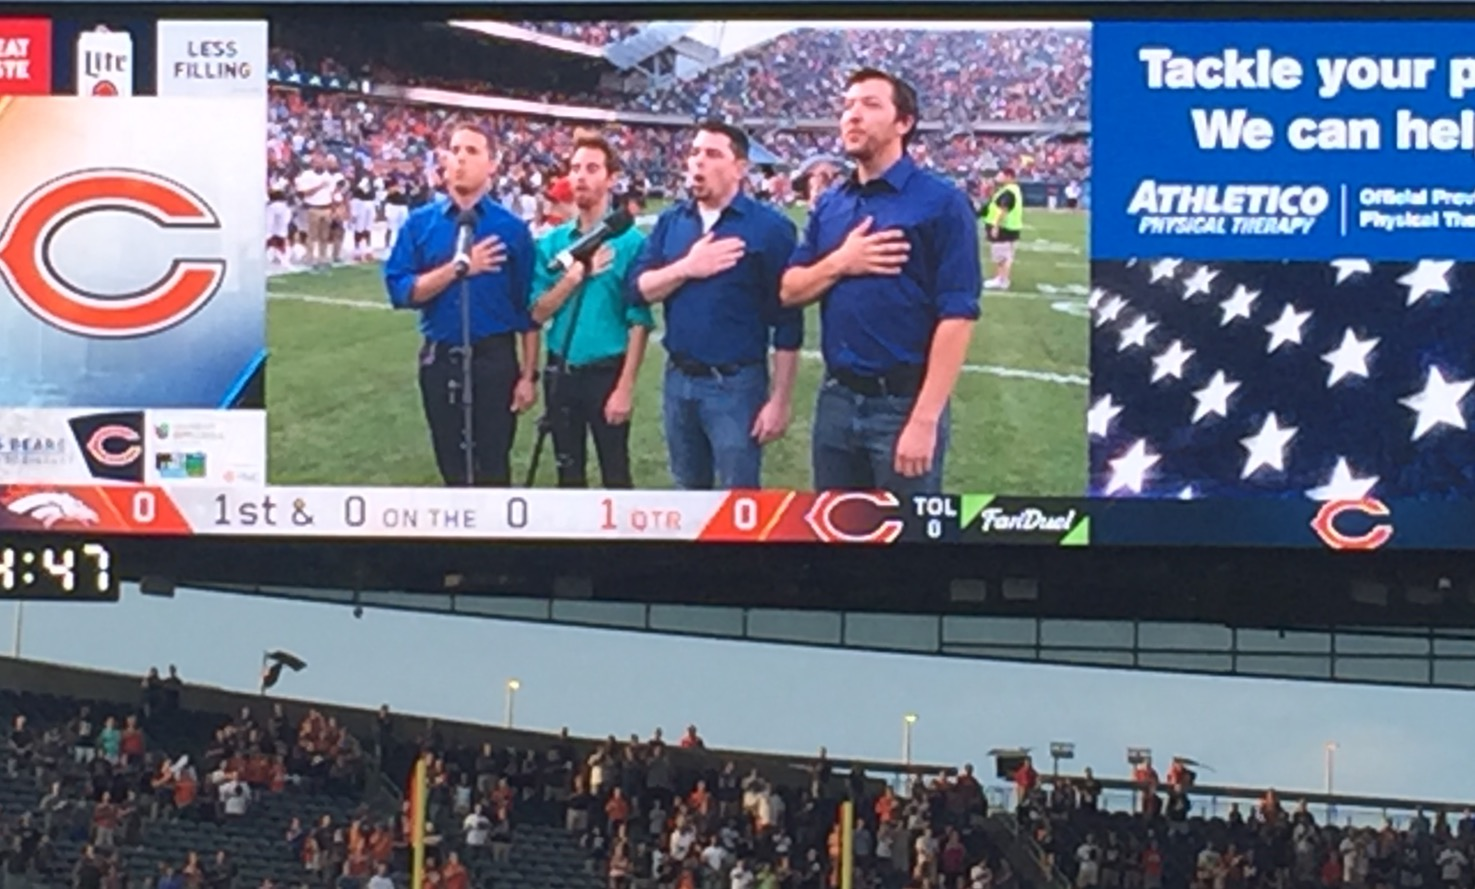 The Four C Notes at Soldier Field.